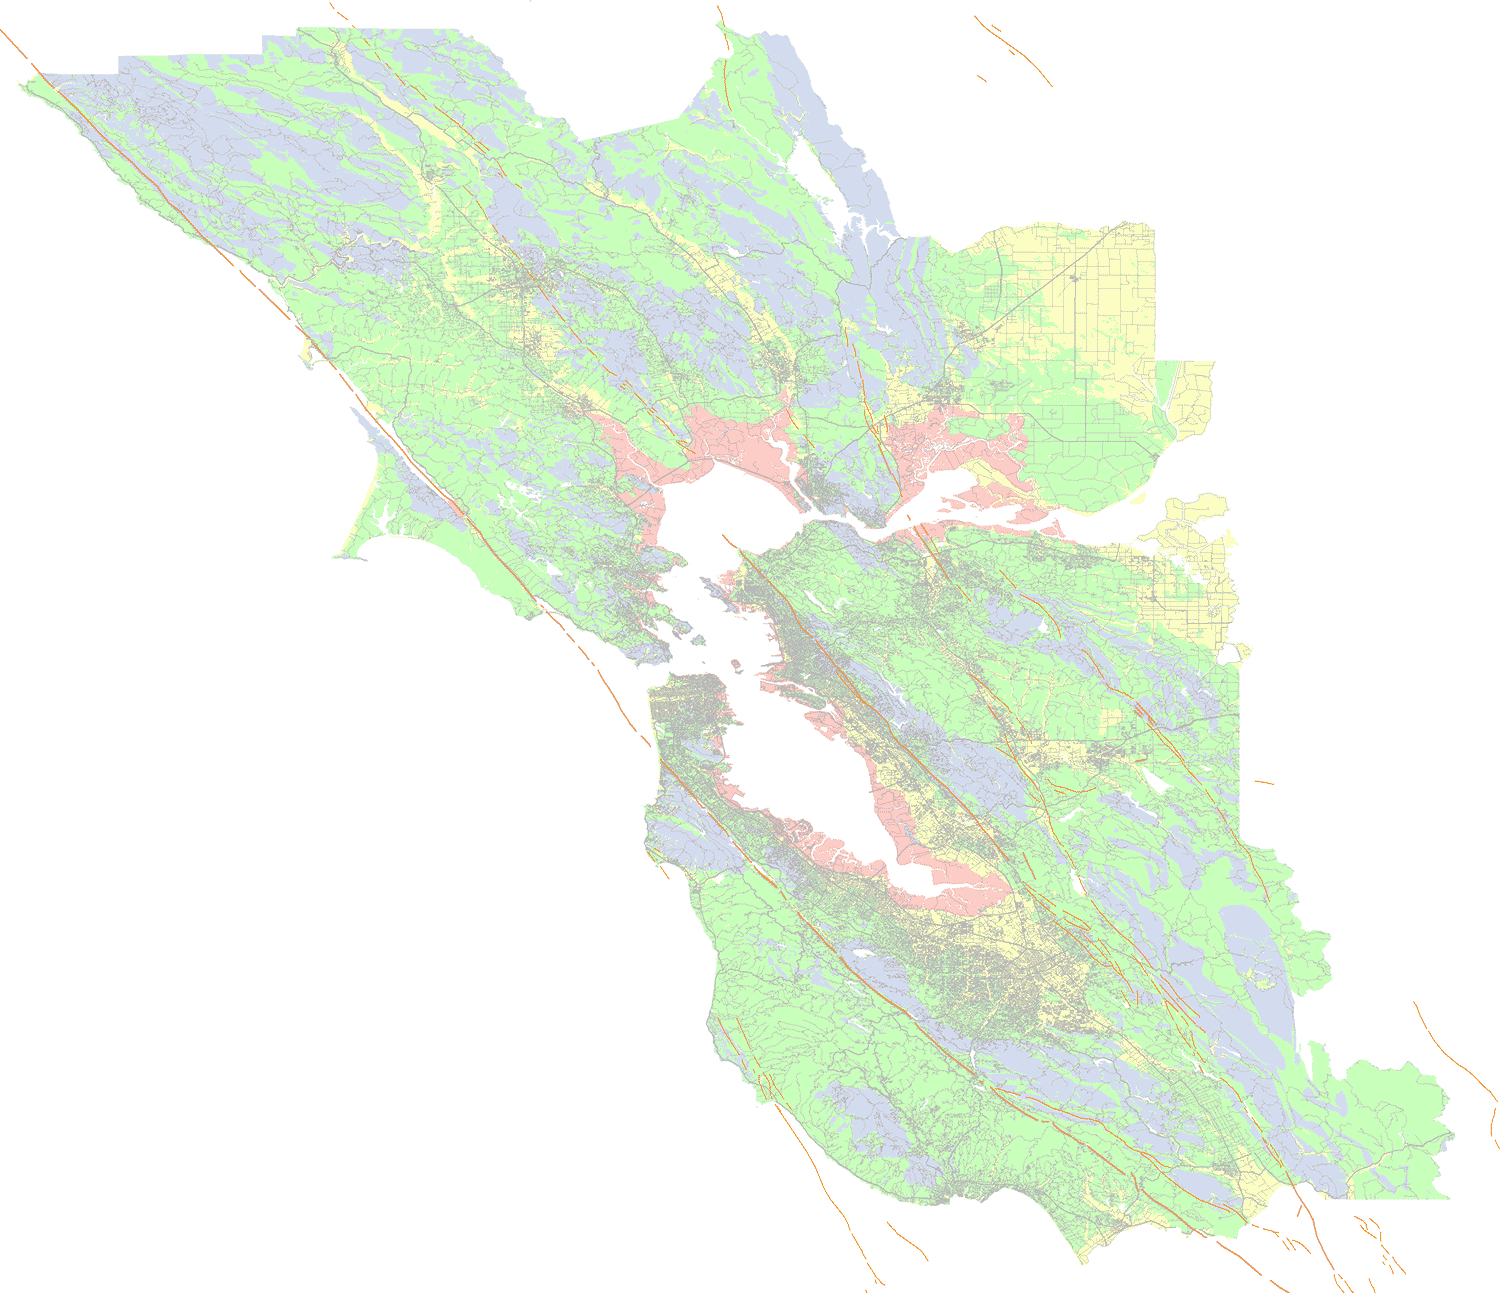 Soil Type And Shaking Hazard In The San Francisco Bay Area - California Soil Map